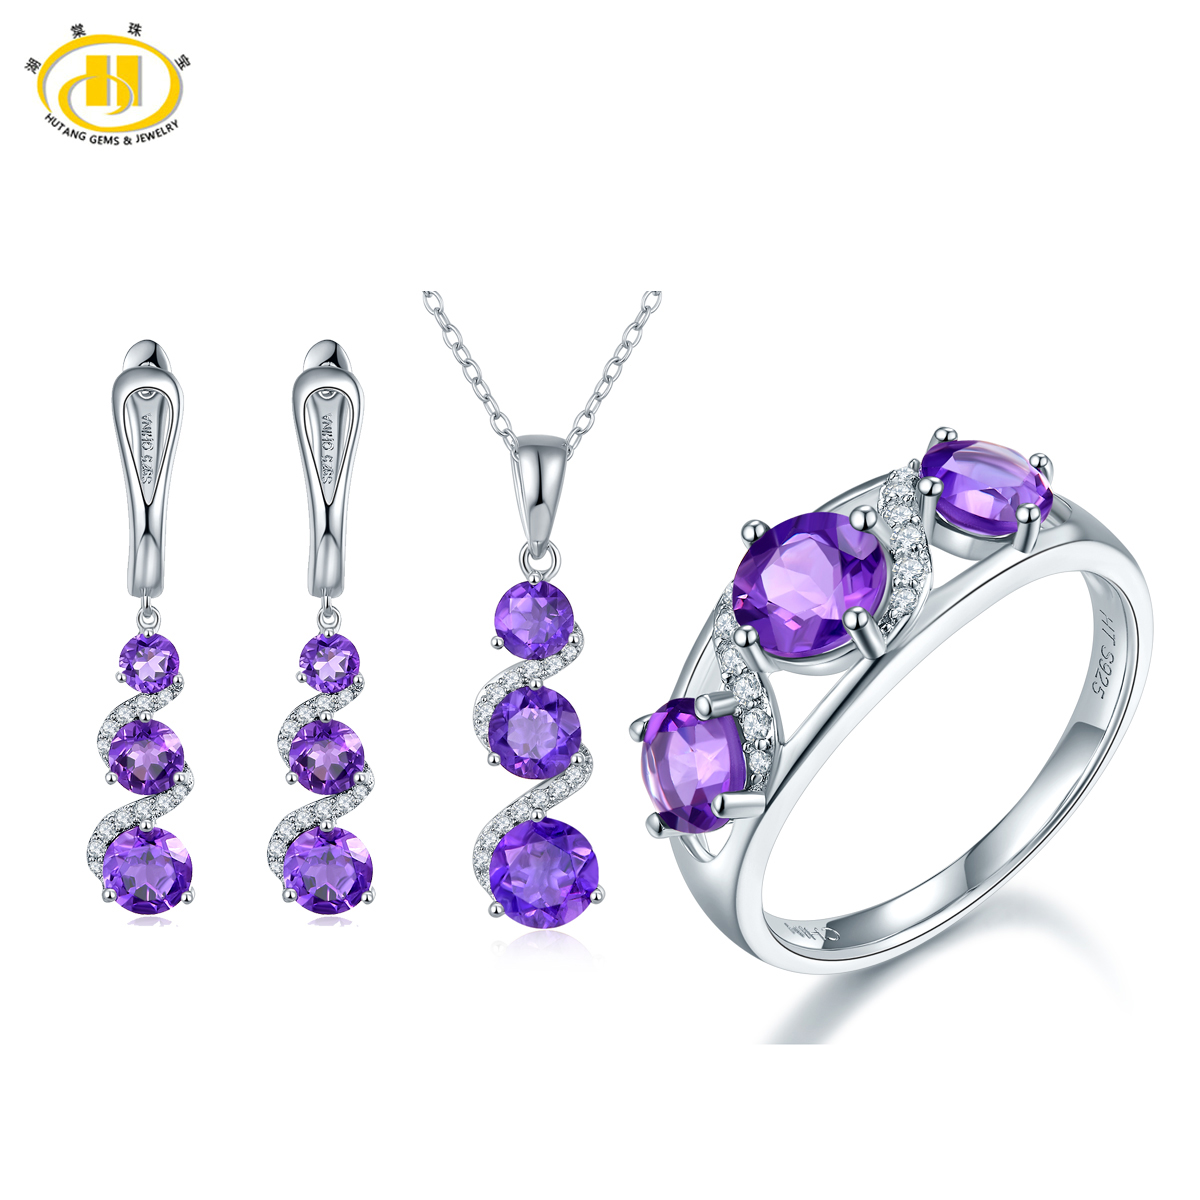 Hutang Solid 925 Sterling Silver Natural Amethyst Jewelry Sets Pendant Ring Earrings for Women Gemstone Fine Jewelry Gift 2017